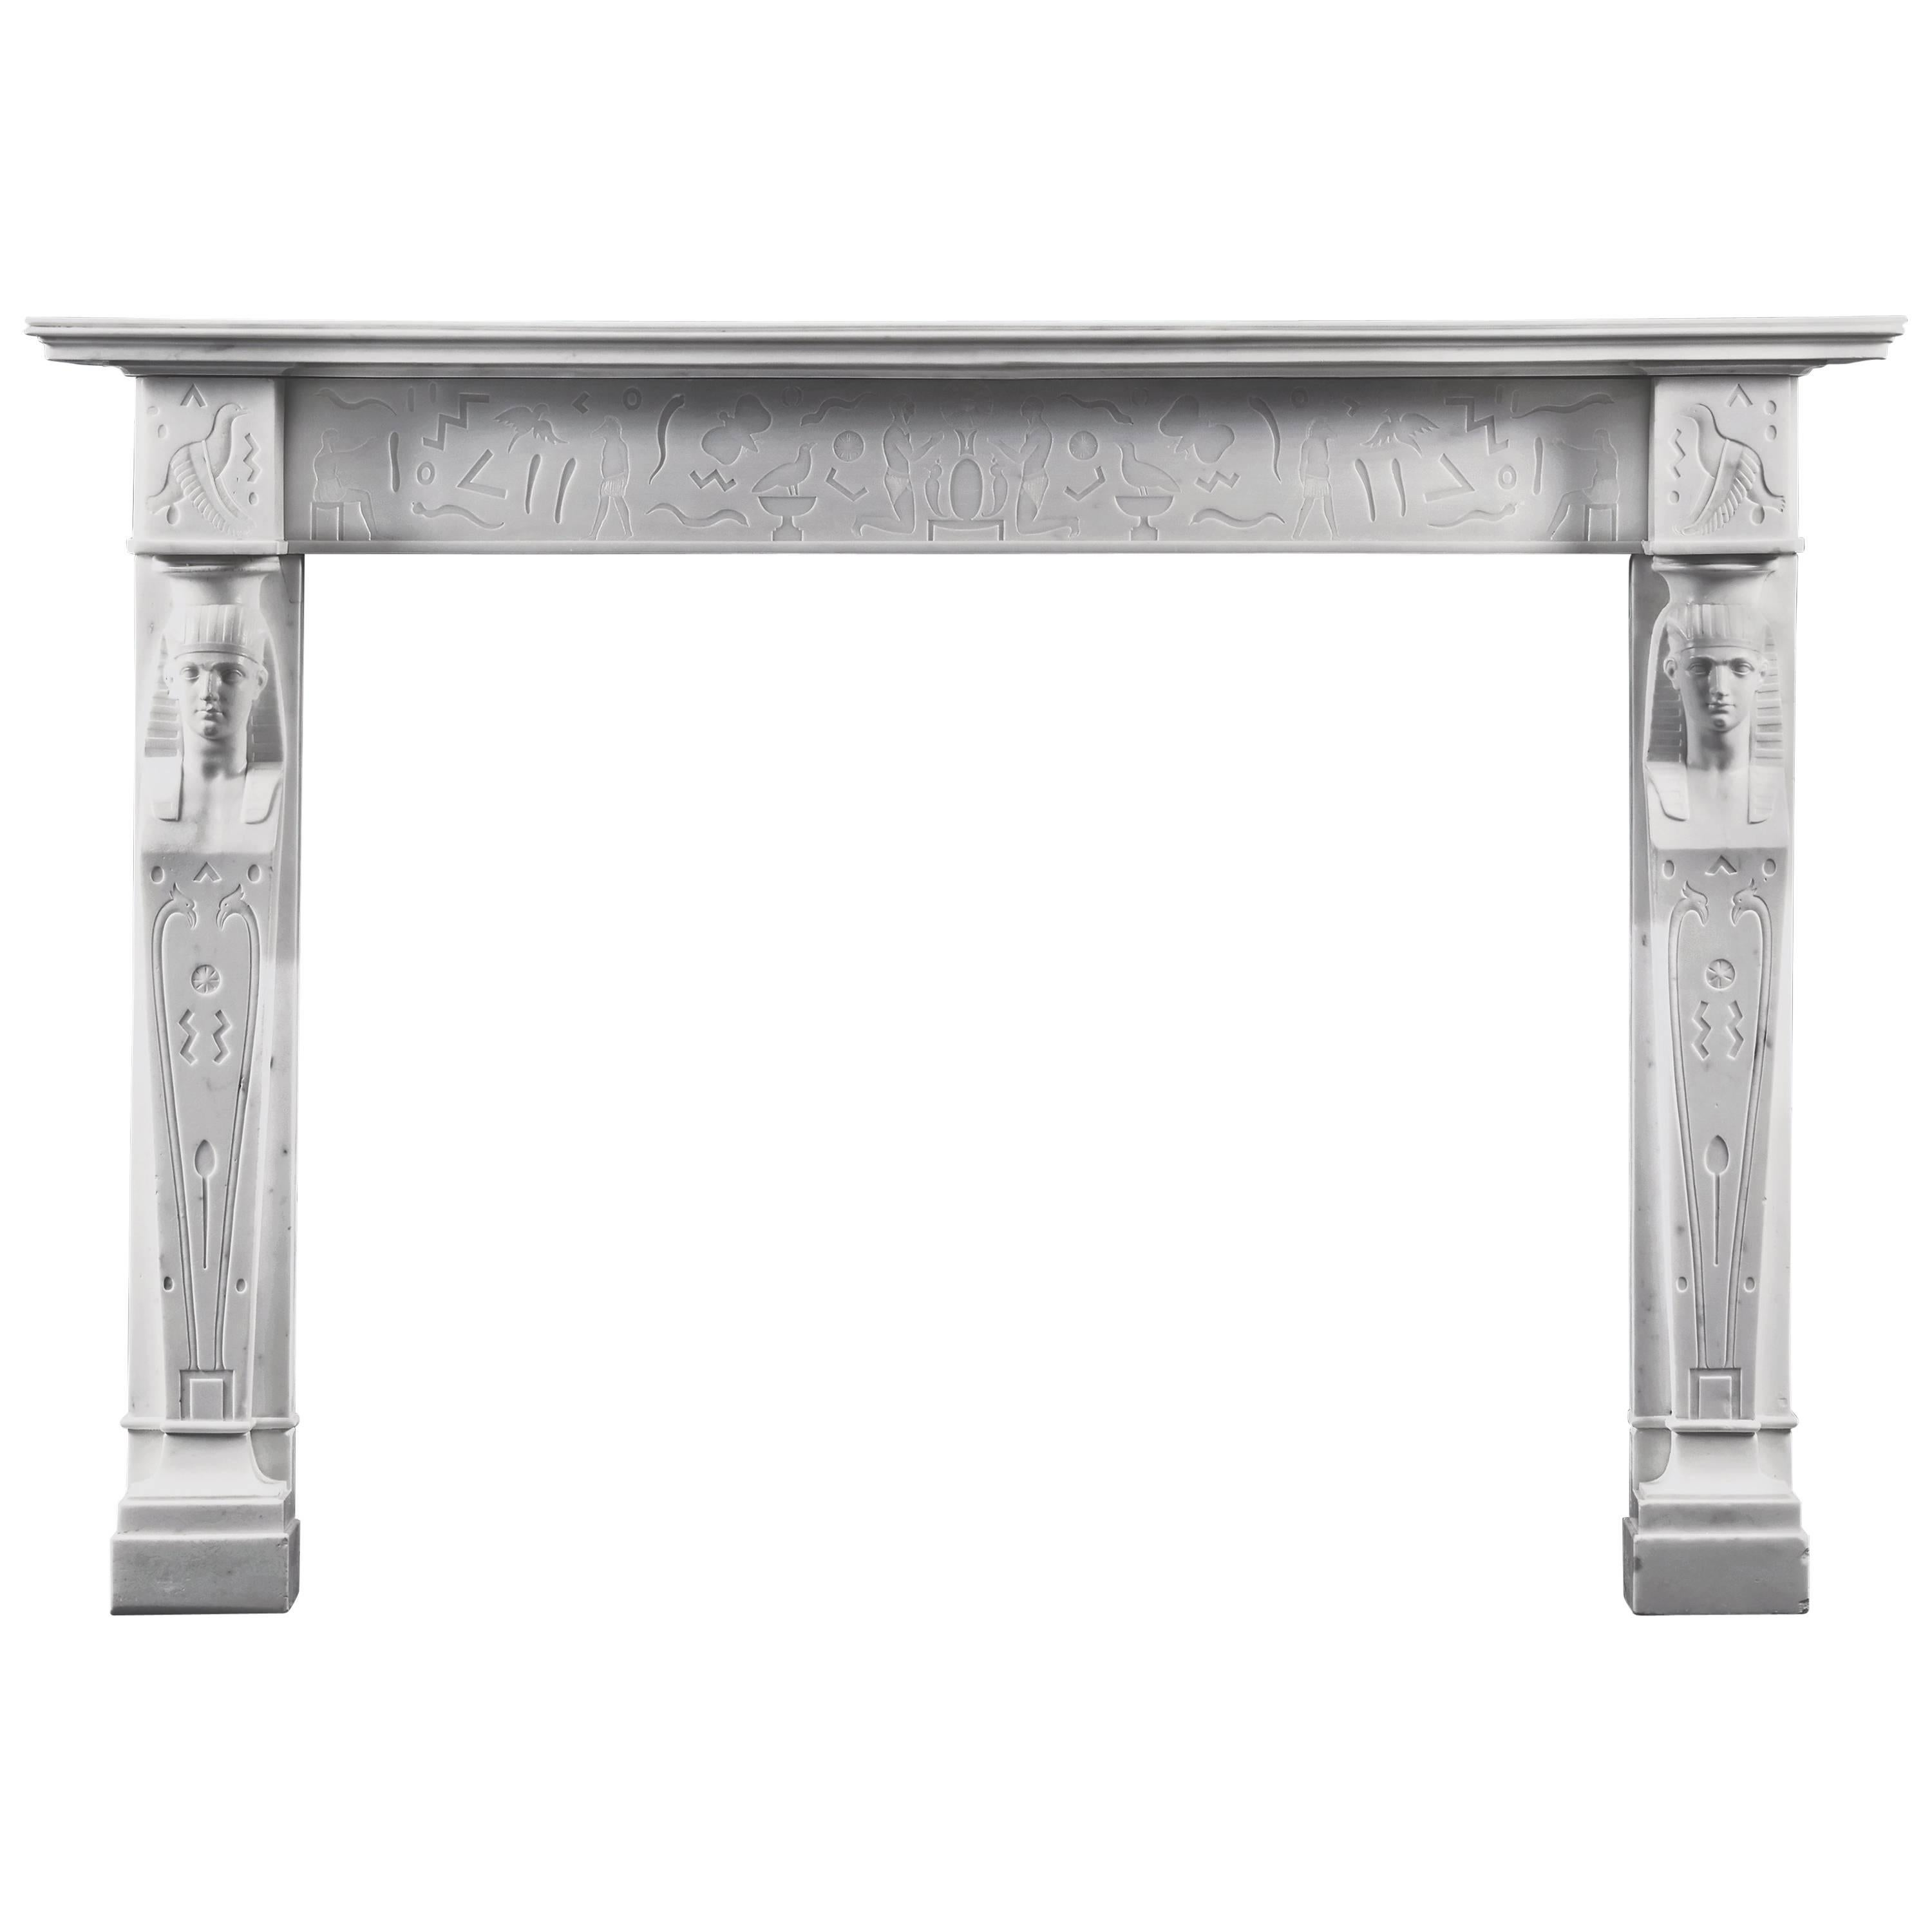 Early 19th Century English Regency Egyptian Style Fireplace in Statuary Marble